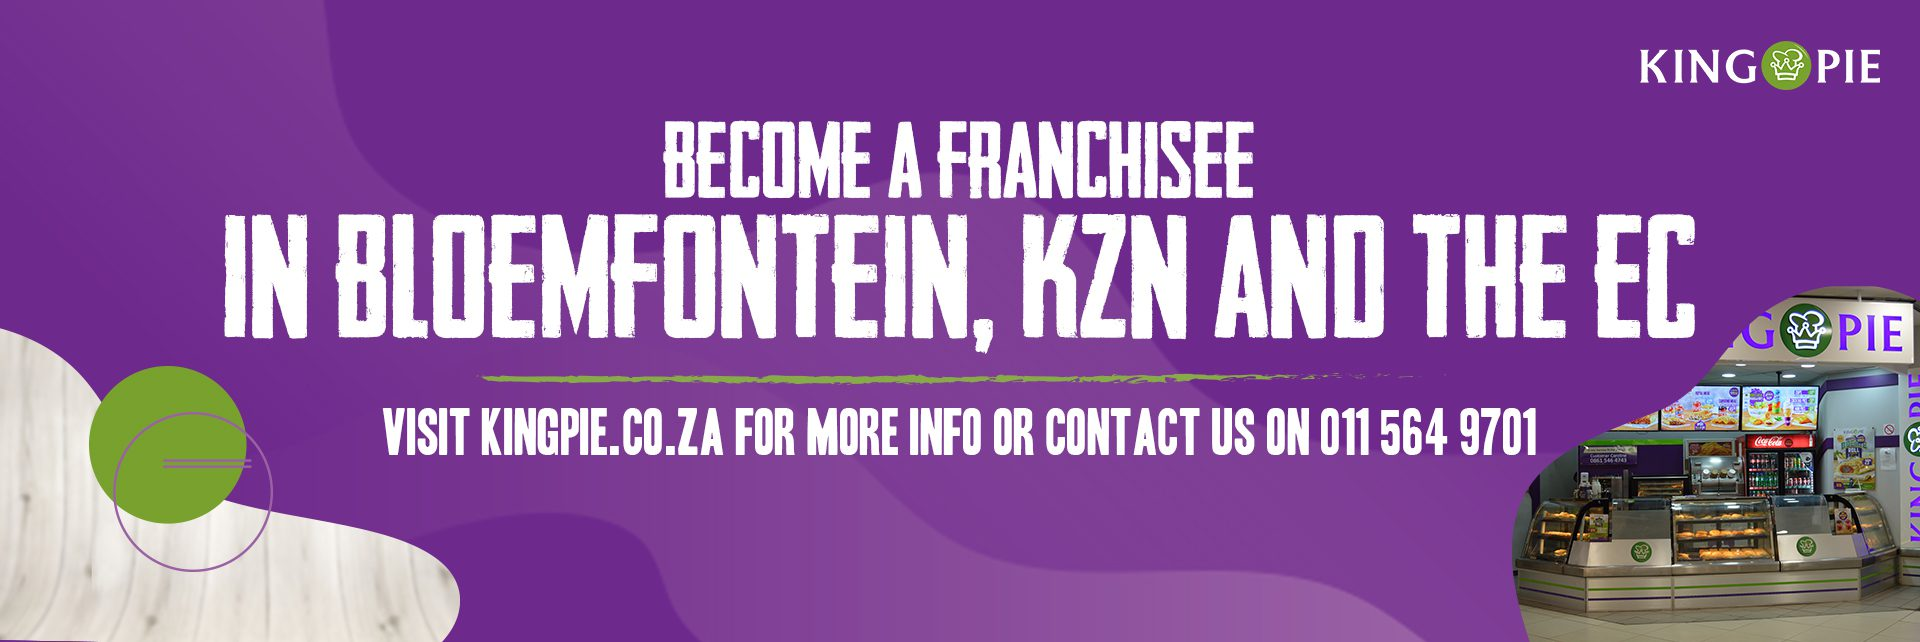 KPIE-Home-Page-Franchisee-Image-img